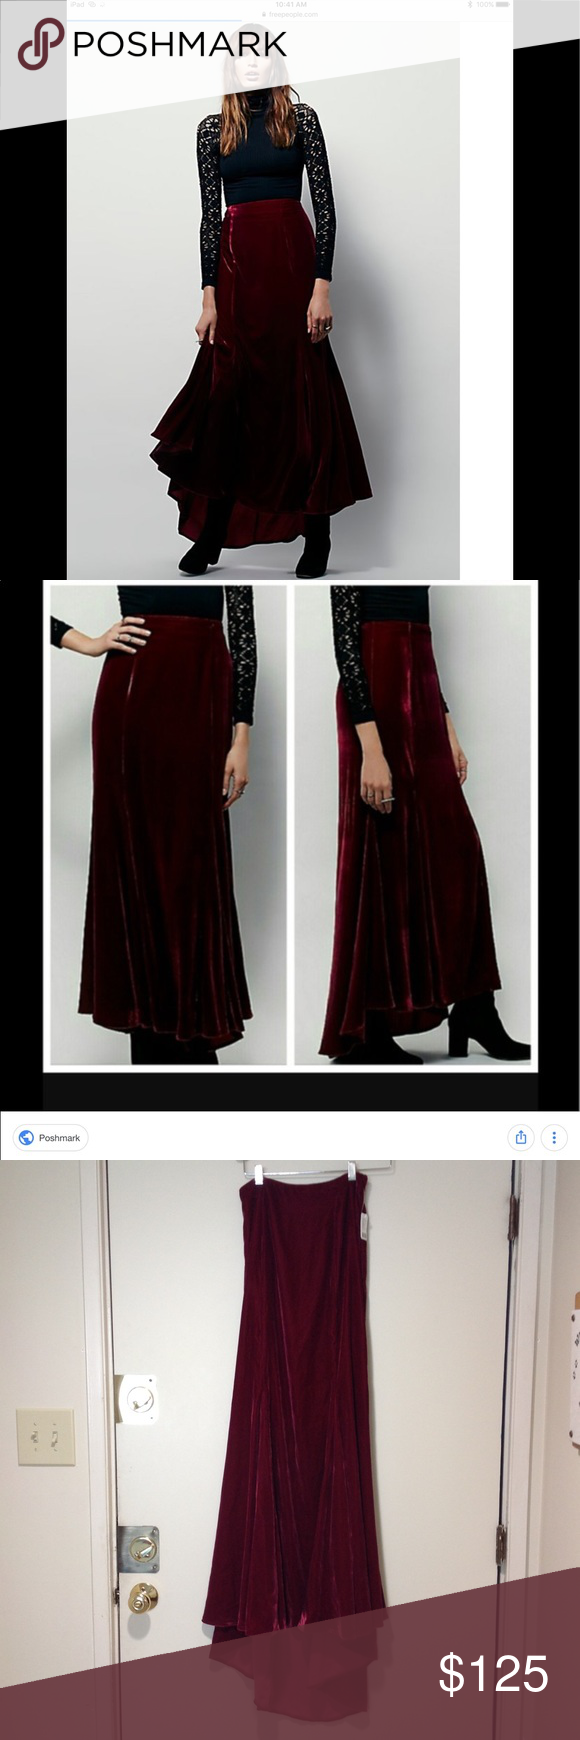 cdf1dcc0f20 Free People X Curtain Call Red Velvet Maxi Skirt FP X Curtain Call Burgundy  Red Velvet Maxi Skirt Super luxe velvet maxi skirt with high-low hem and  front ...